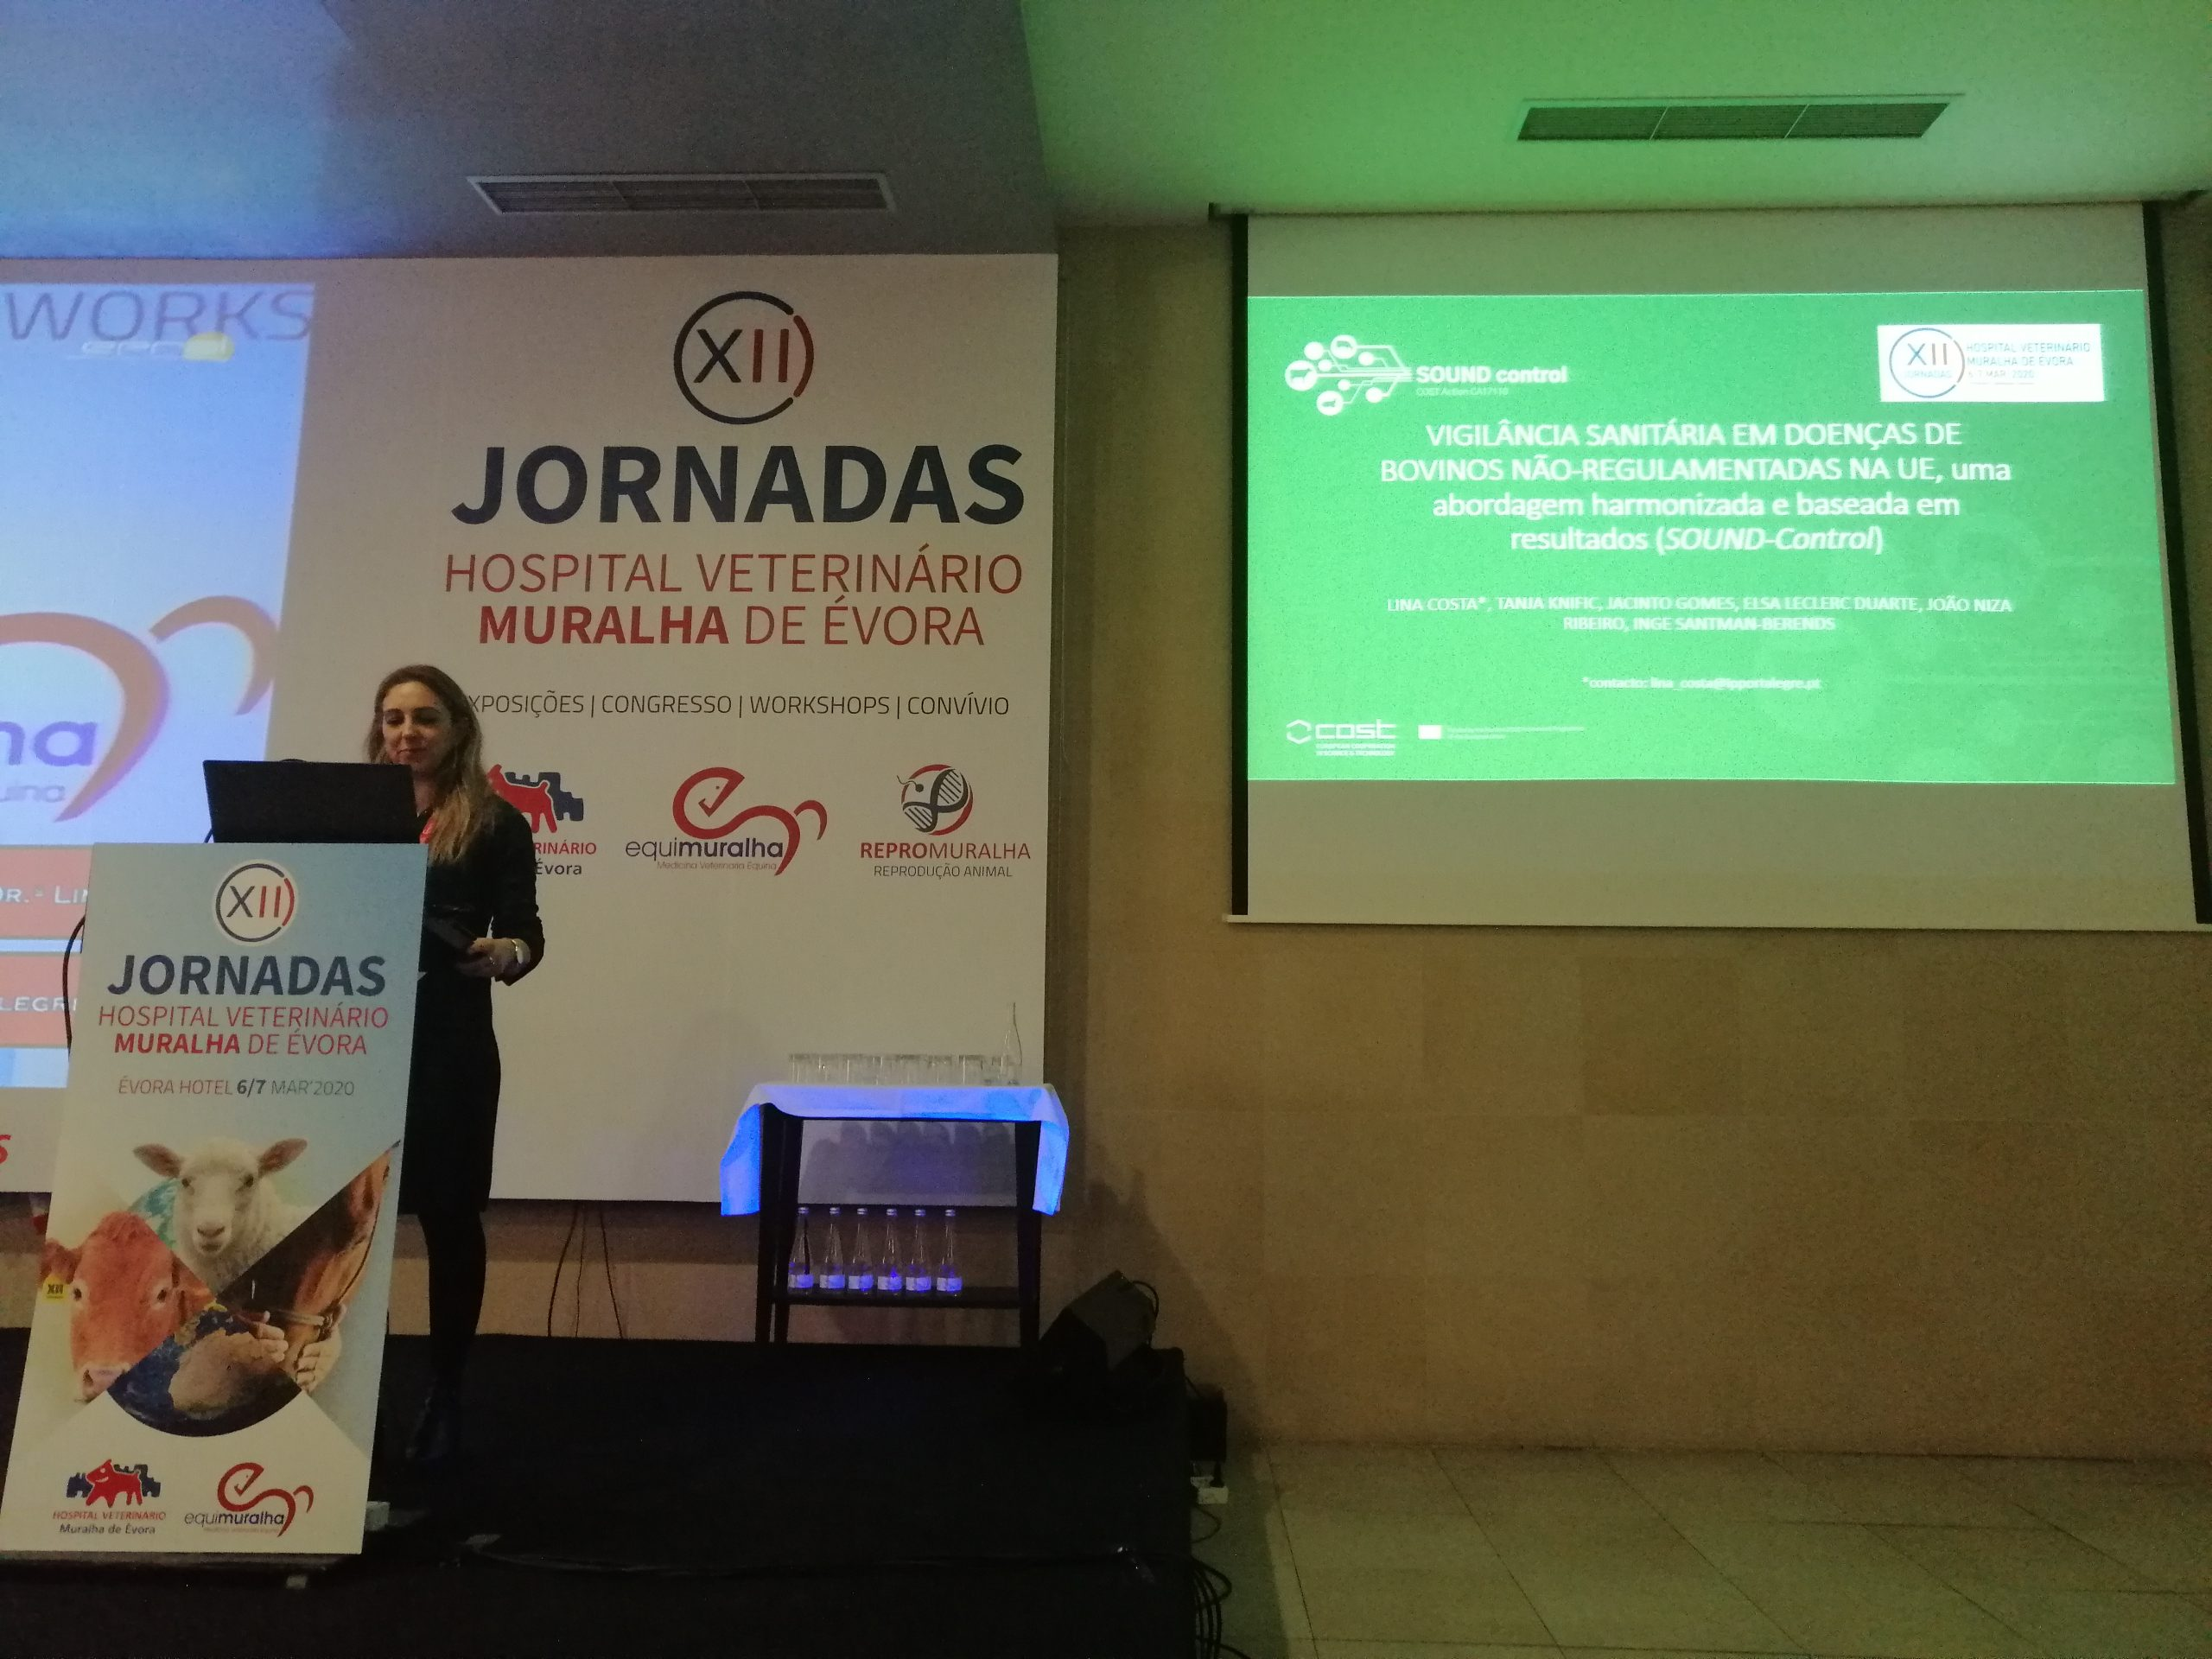 Lina Costa presents SOUND Control at the 12th Jornadas Hospital Veterinario Muralha de Evora 2